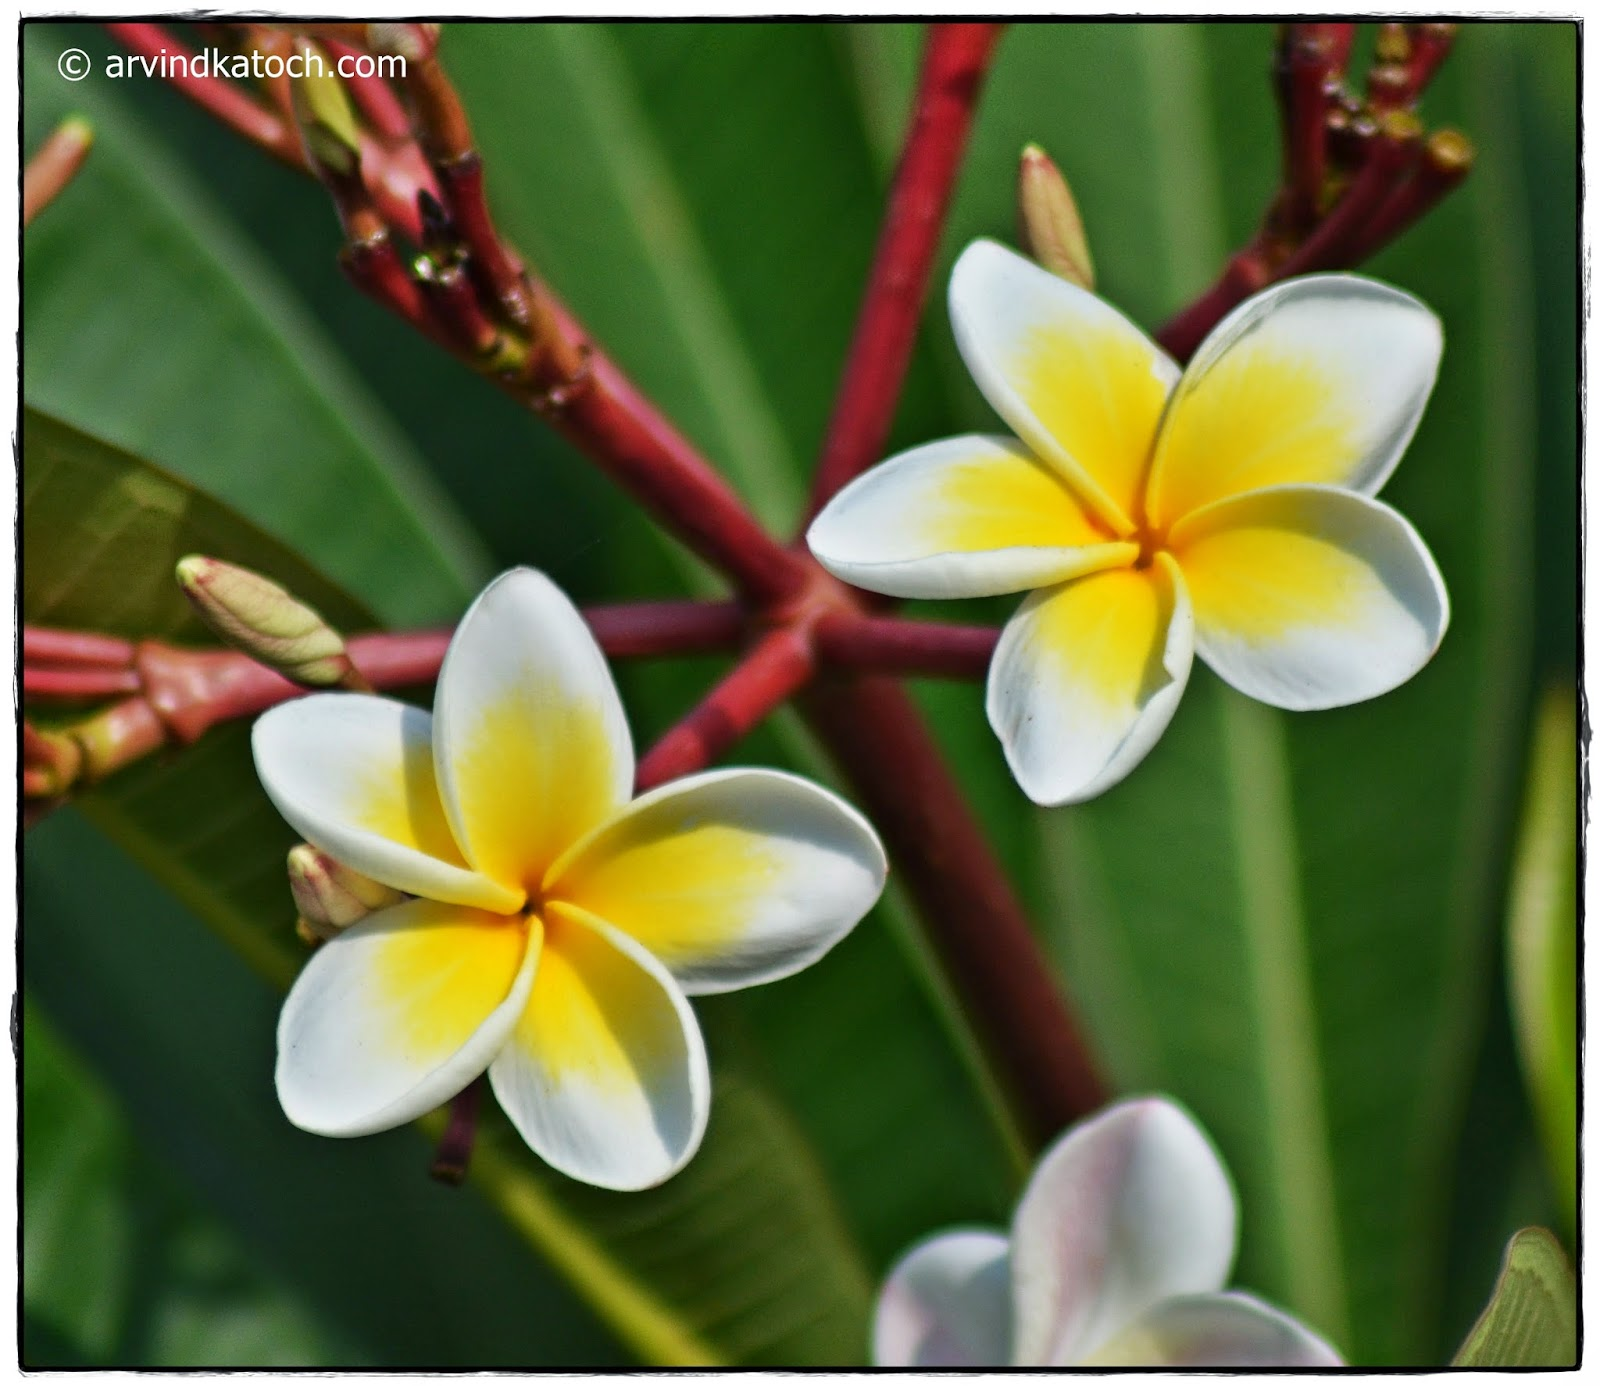 Plumeria, White Flower, Yellow center, Garden Flower